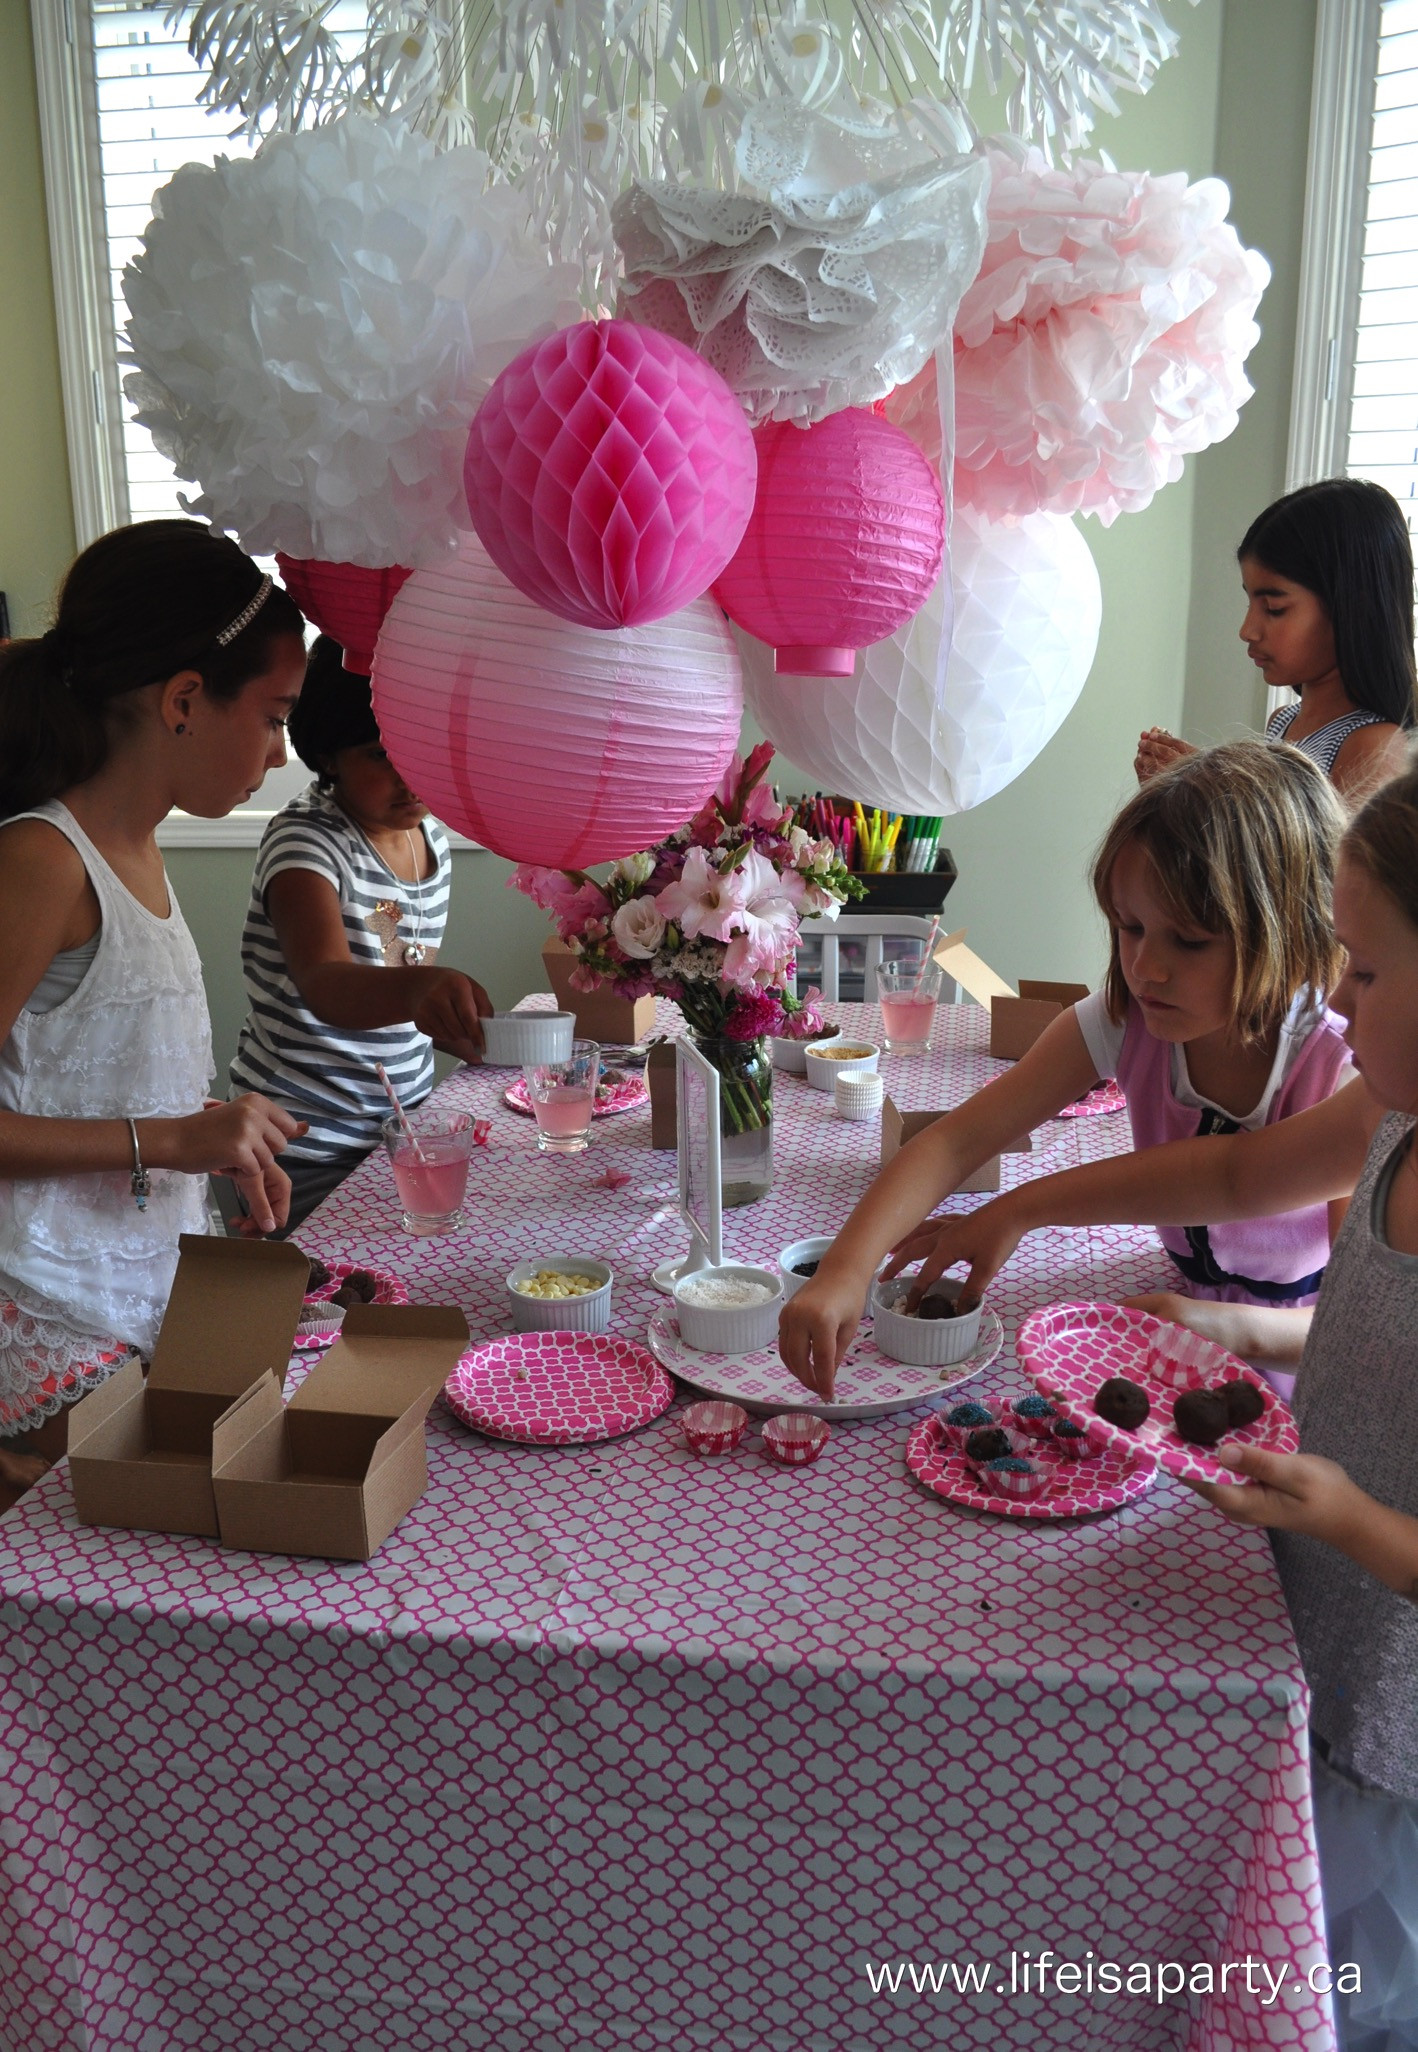 Best ideas about Paris Birthday Decorations . Save or Pin Paris Birthday Party Part e Party Activities and Now.